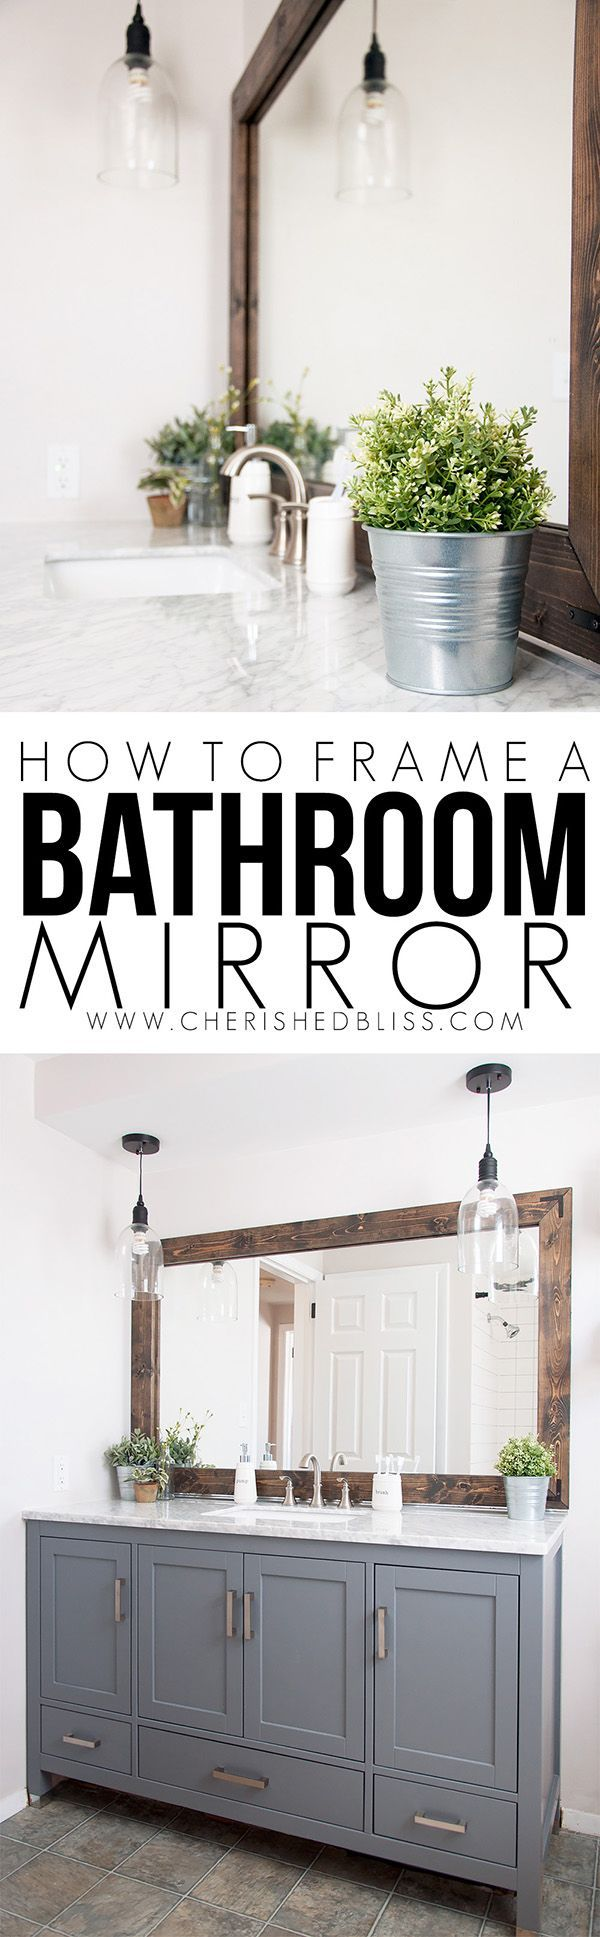 Diy Bathroom Decor Ideas Wood Framed Bathroom Mirror Tutorial Cool Do It Yourself Bath Ideas On A Budget Rustic Bathroom Fixtures